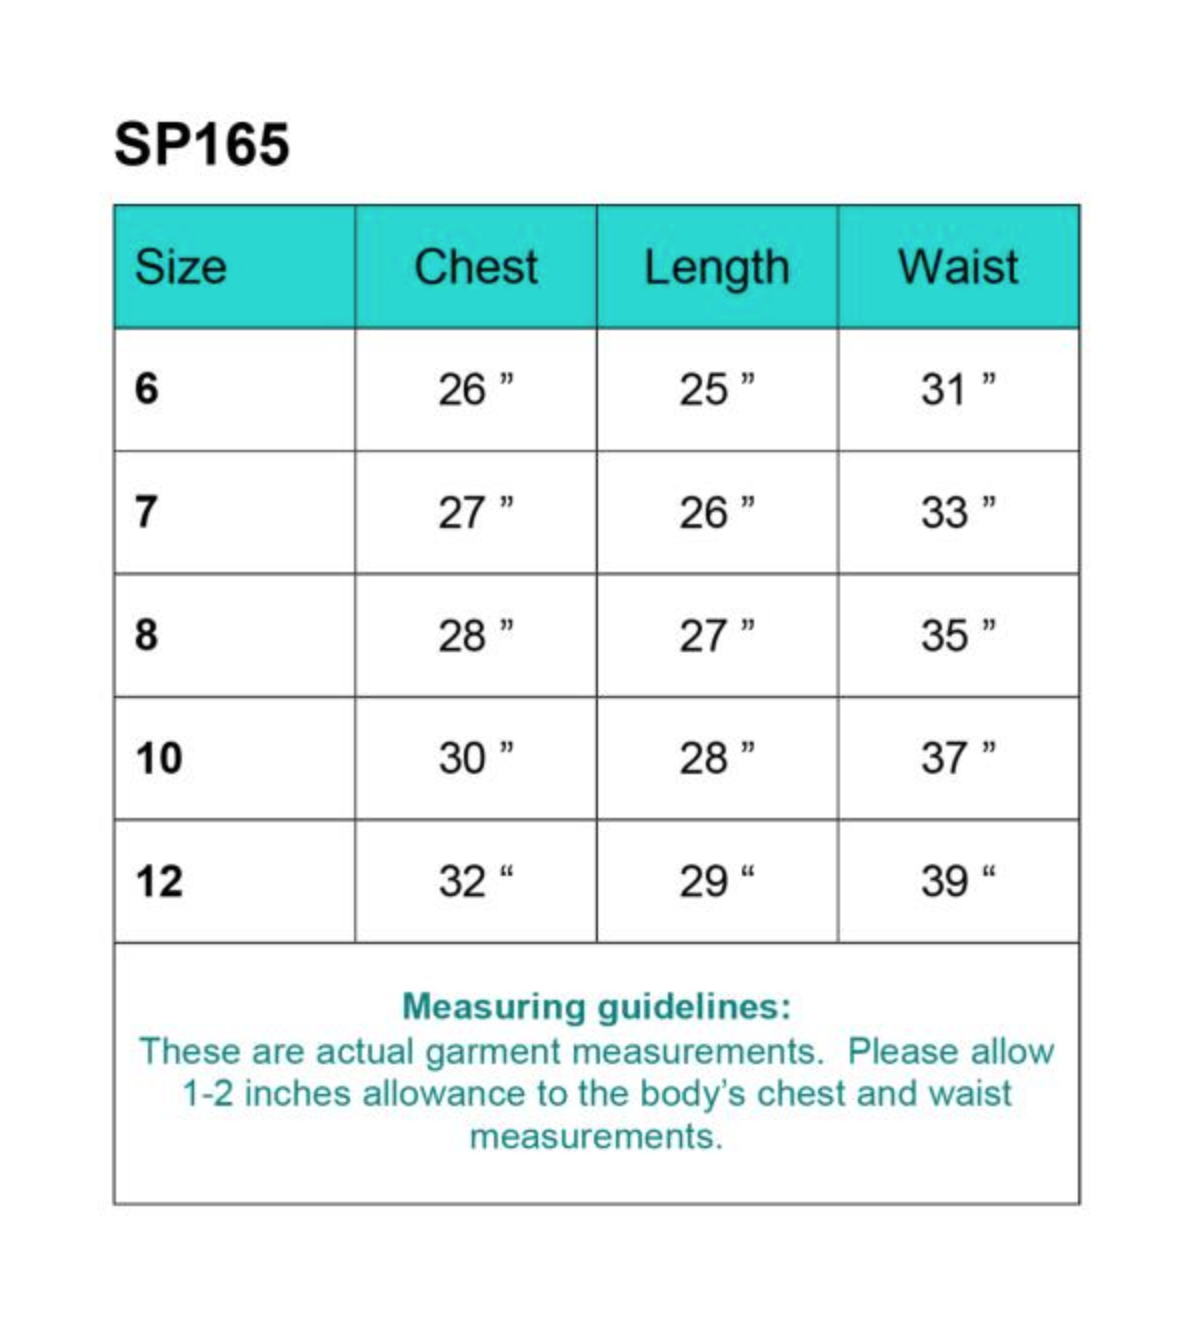 sizing-chart-sp165.png